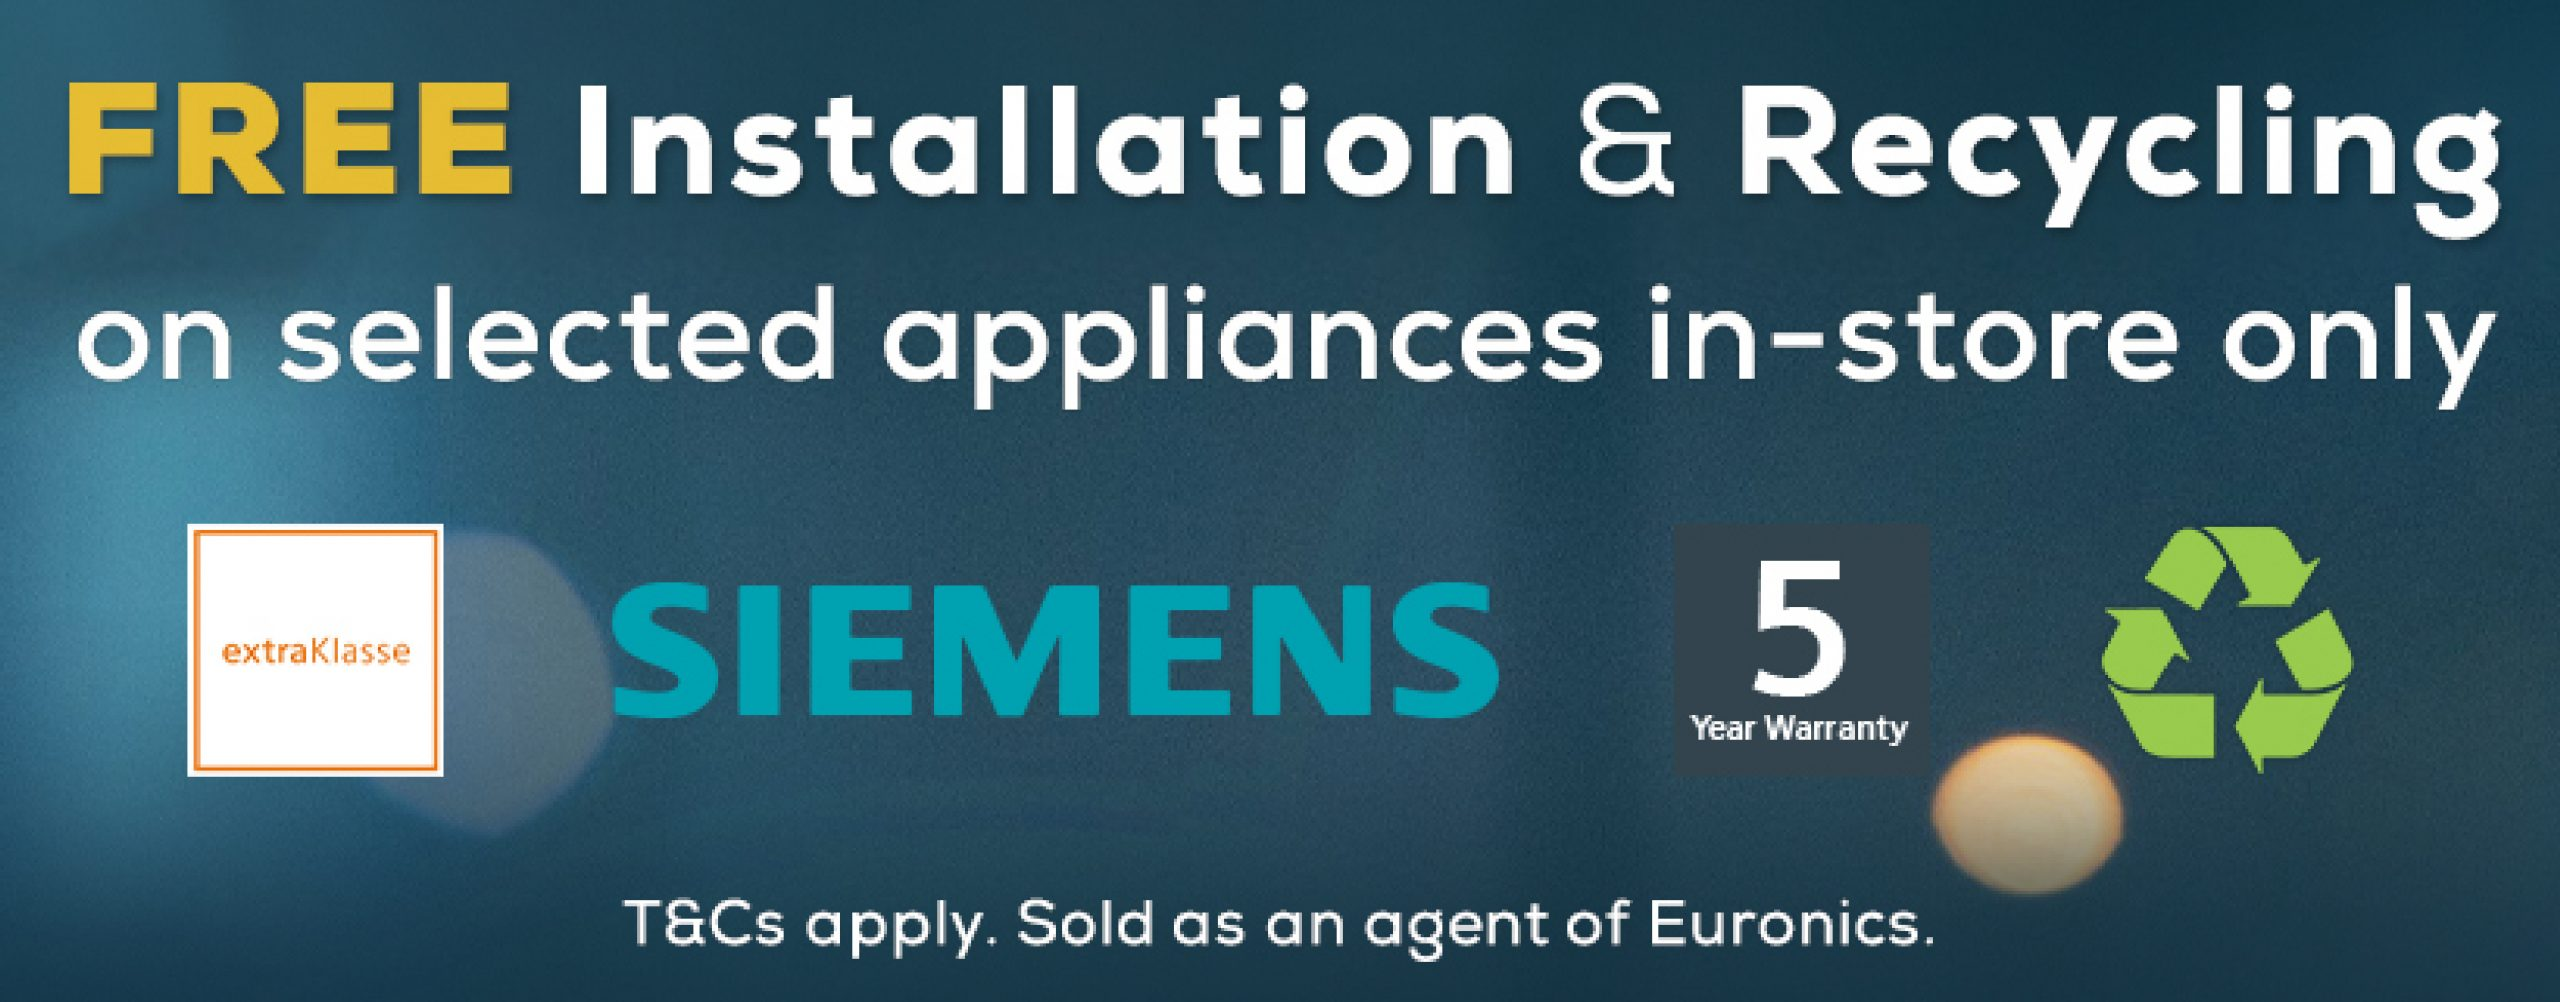 Siemens Free Install & Recycle